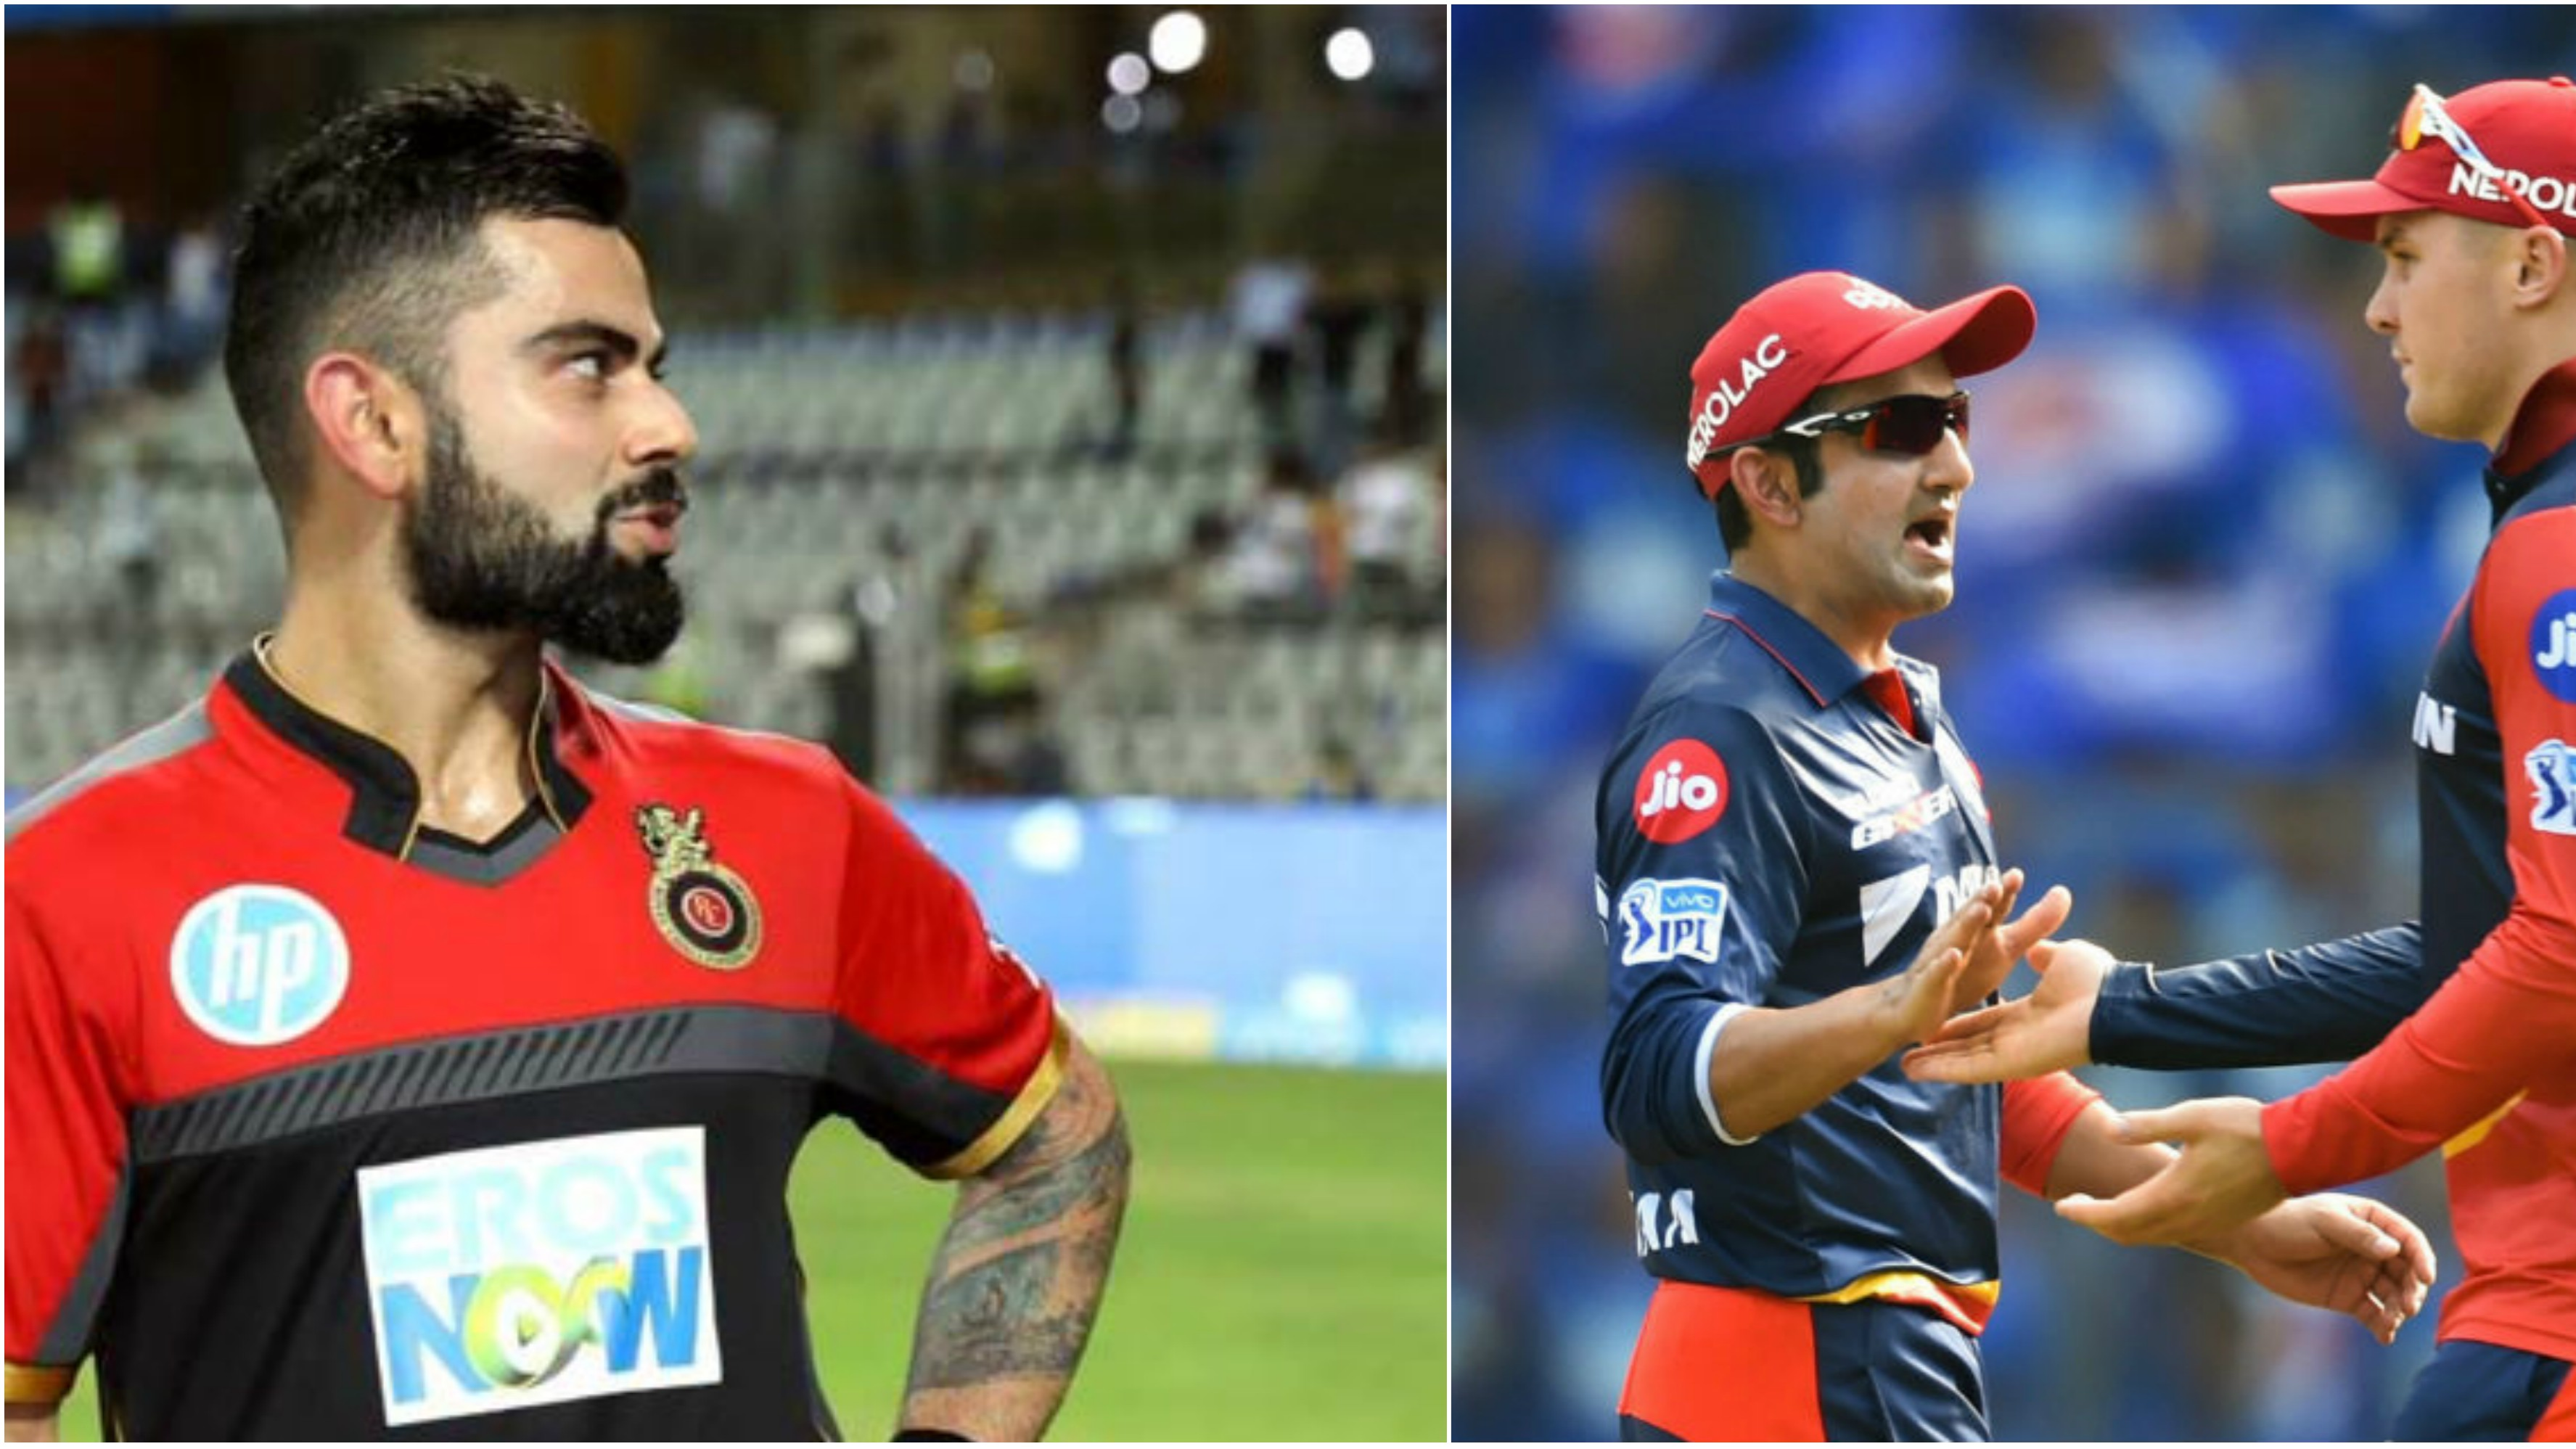 IPL 2018: Match 19, RCB vs DD: Both teams in desperate need of a victory tonight